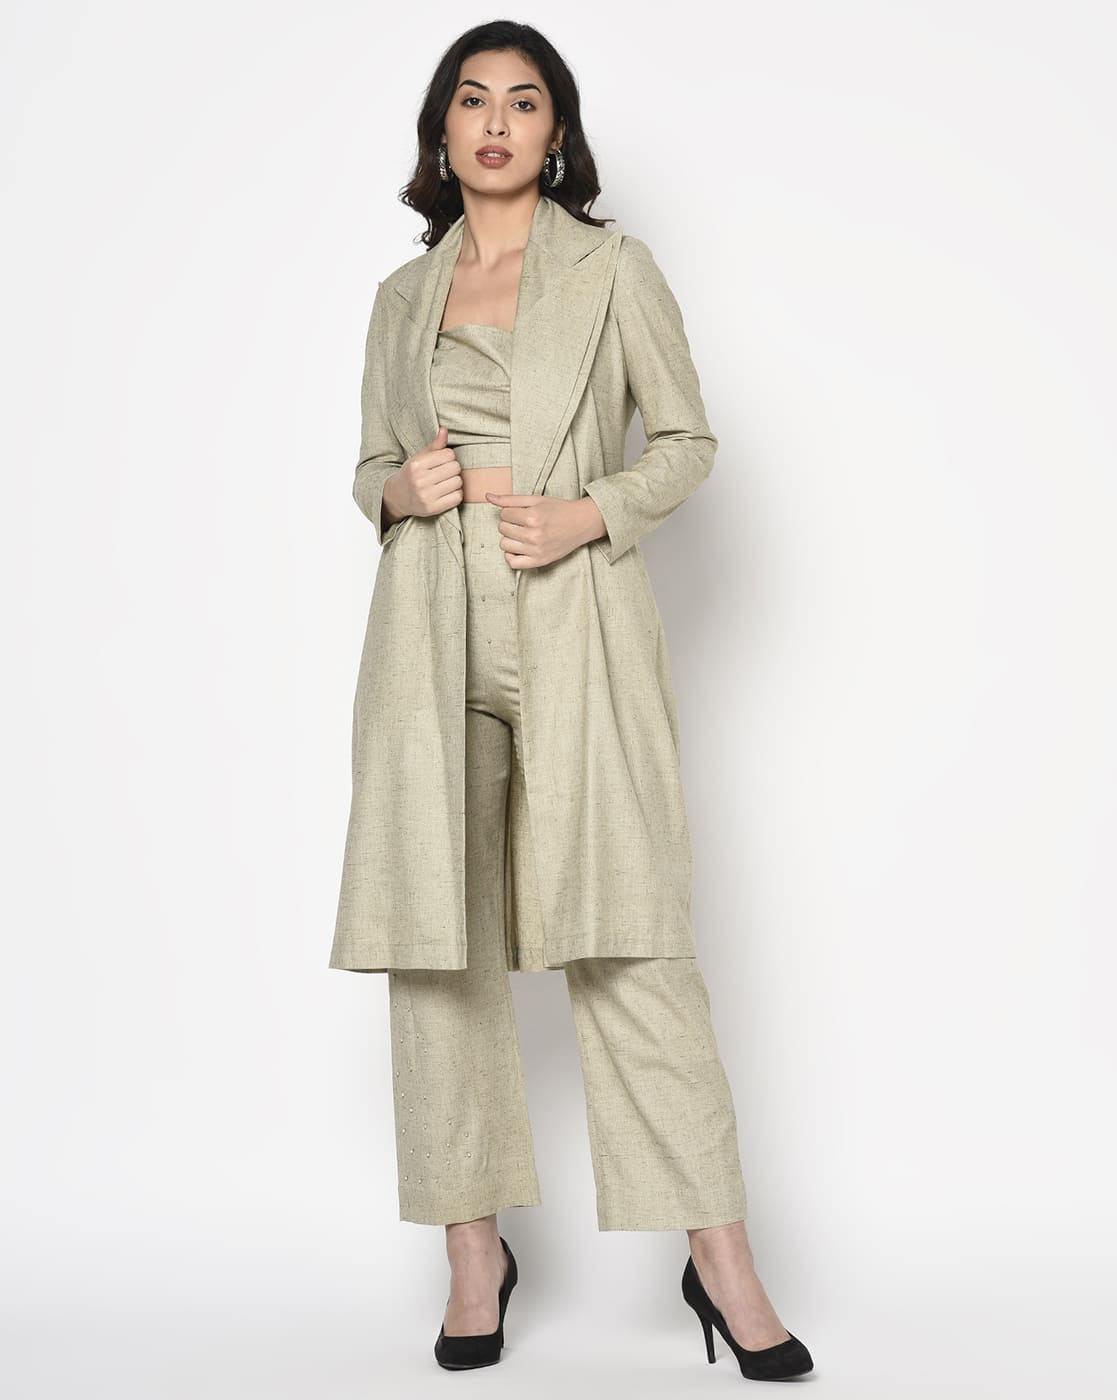 Khaki olive trench coat